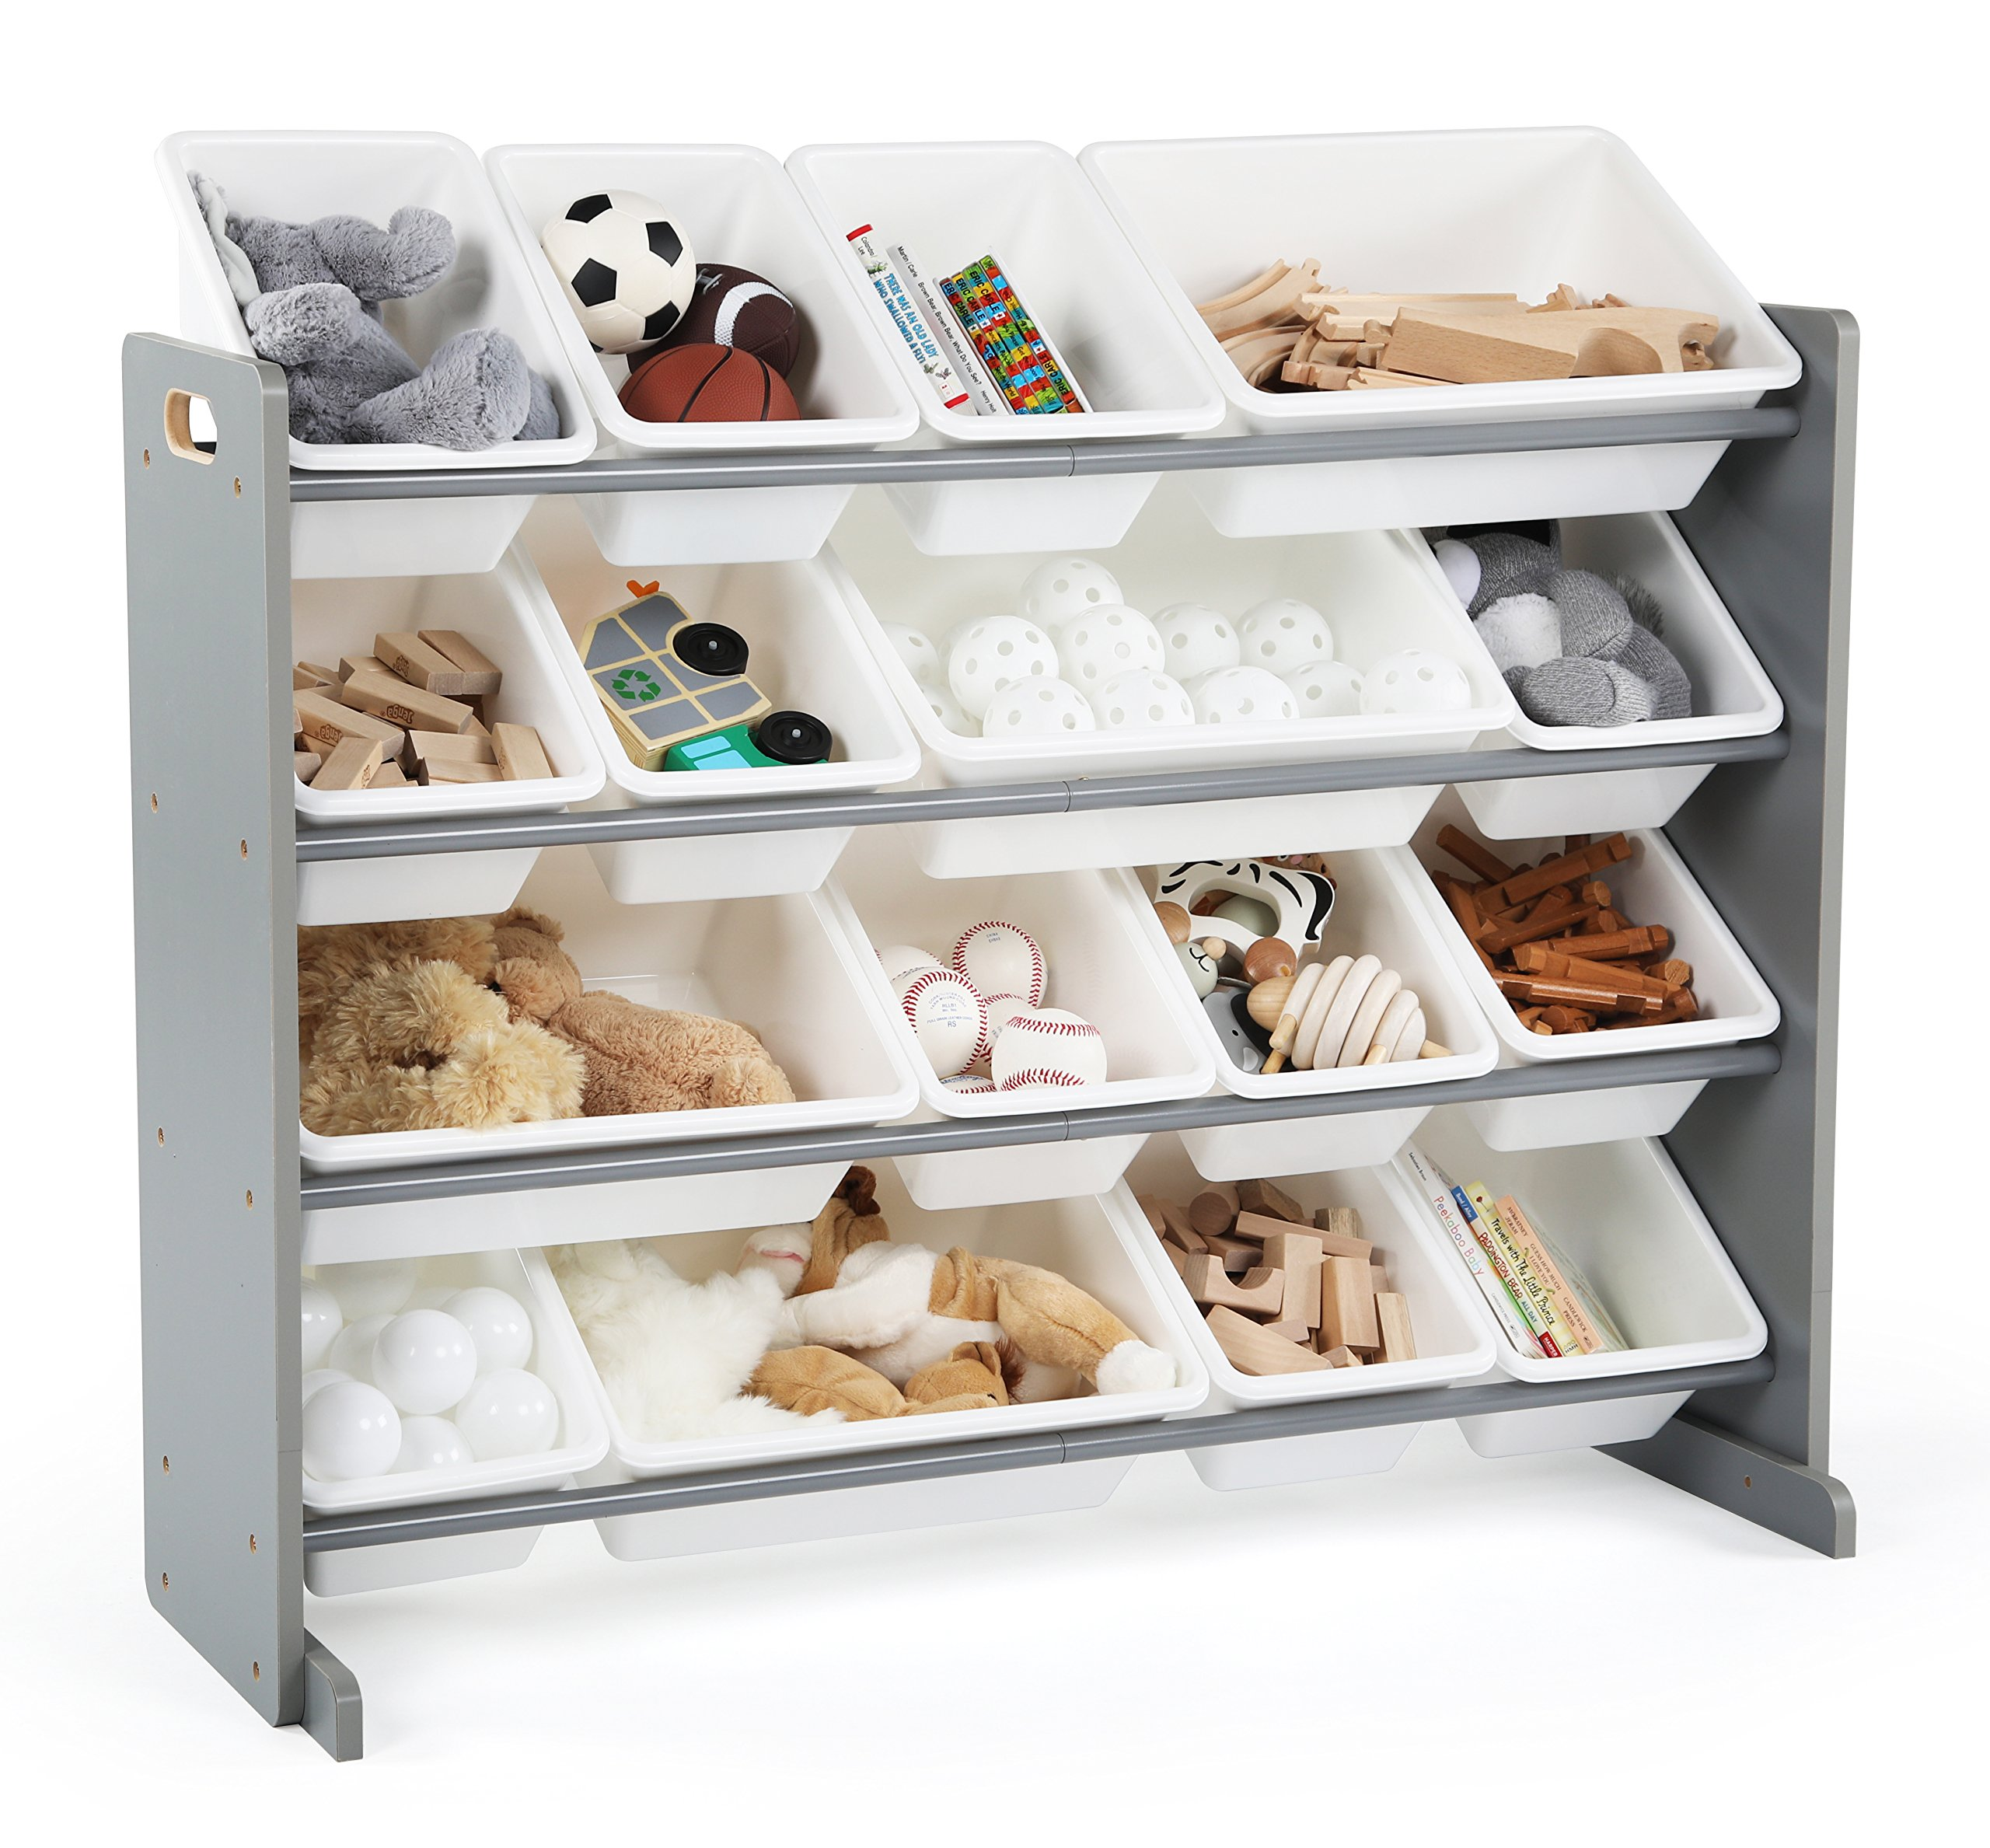 TOT Tutors WO701 Springfield Collection Supersized Wood Toy Storage Organizer, Extra Large, Grey/White by Tot Tutors